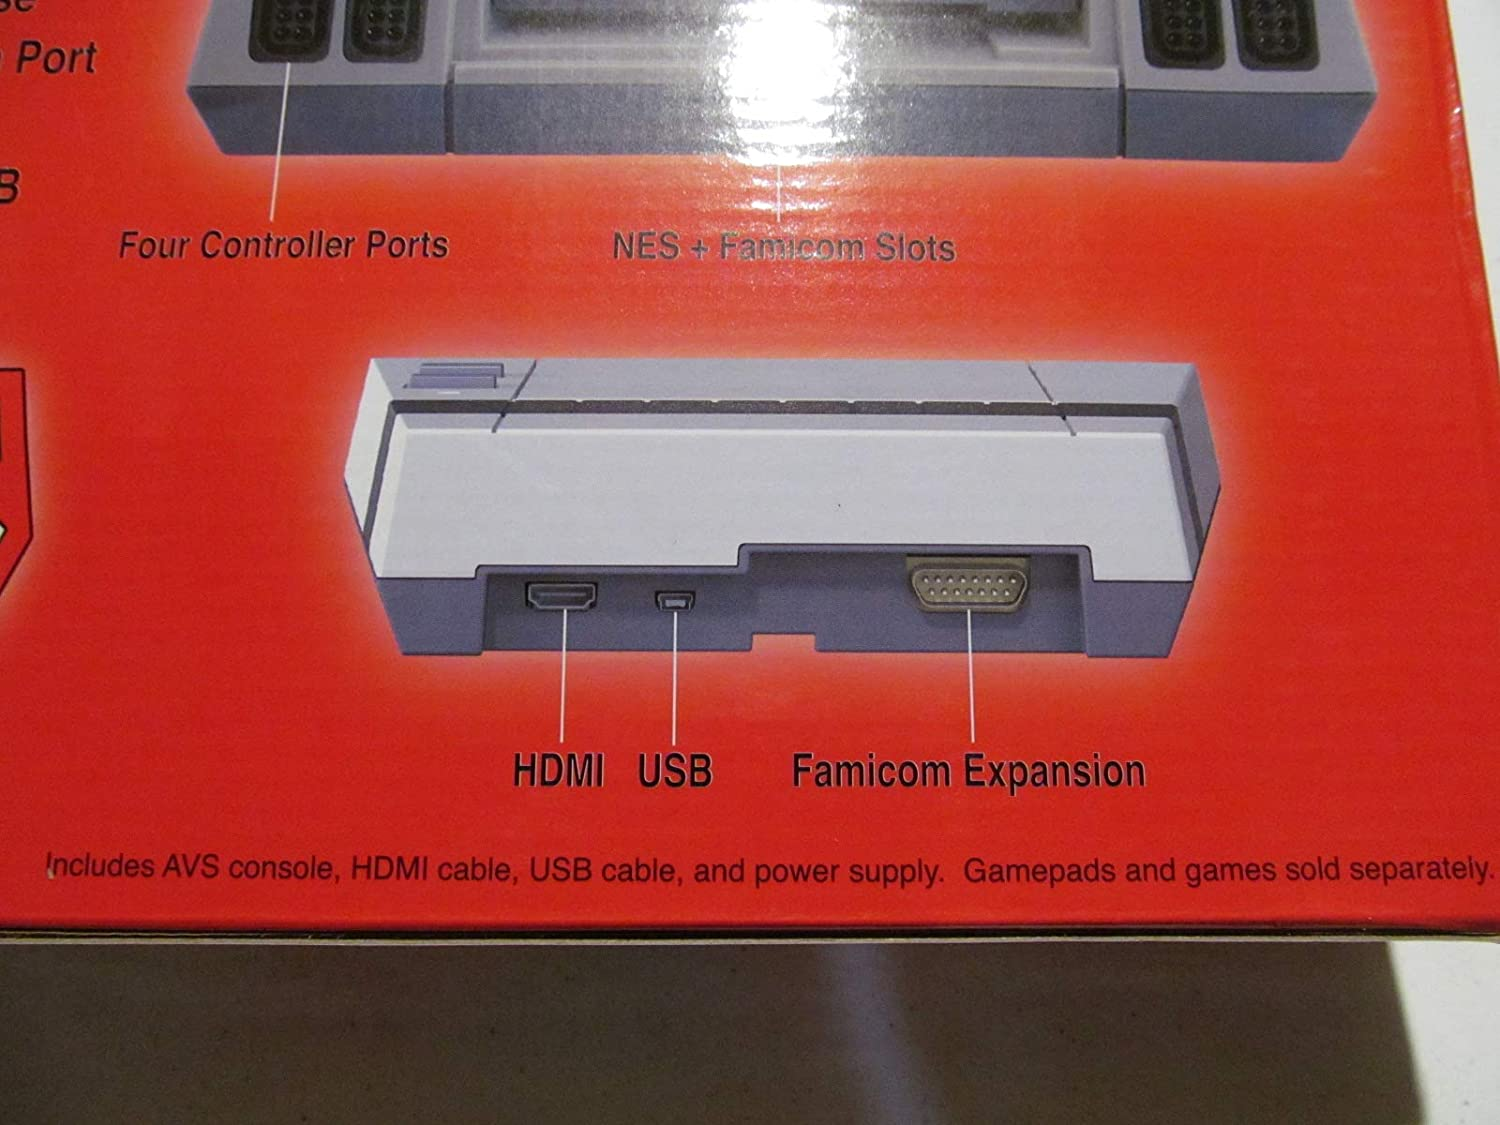 AVS Advanced Video System Console, play NES Nintendo Entertainment System cartridges in HD via HDMI: Video Games